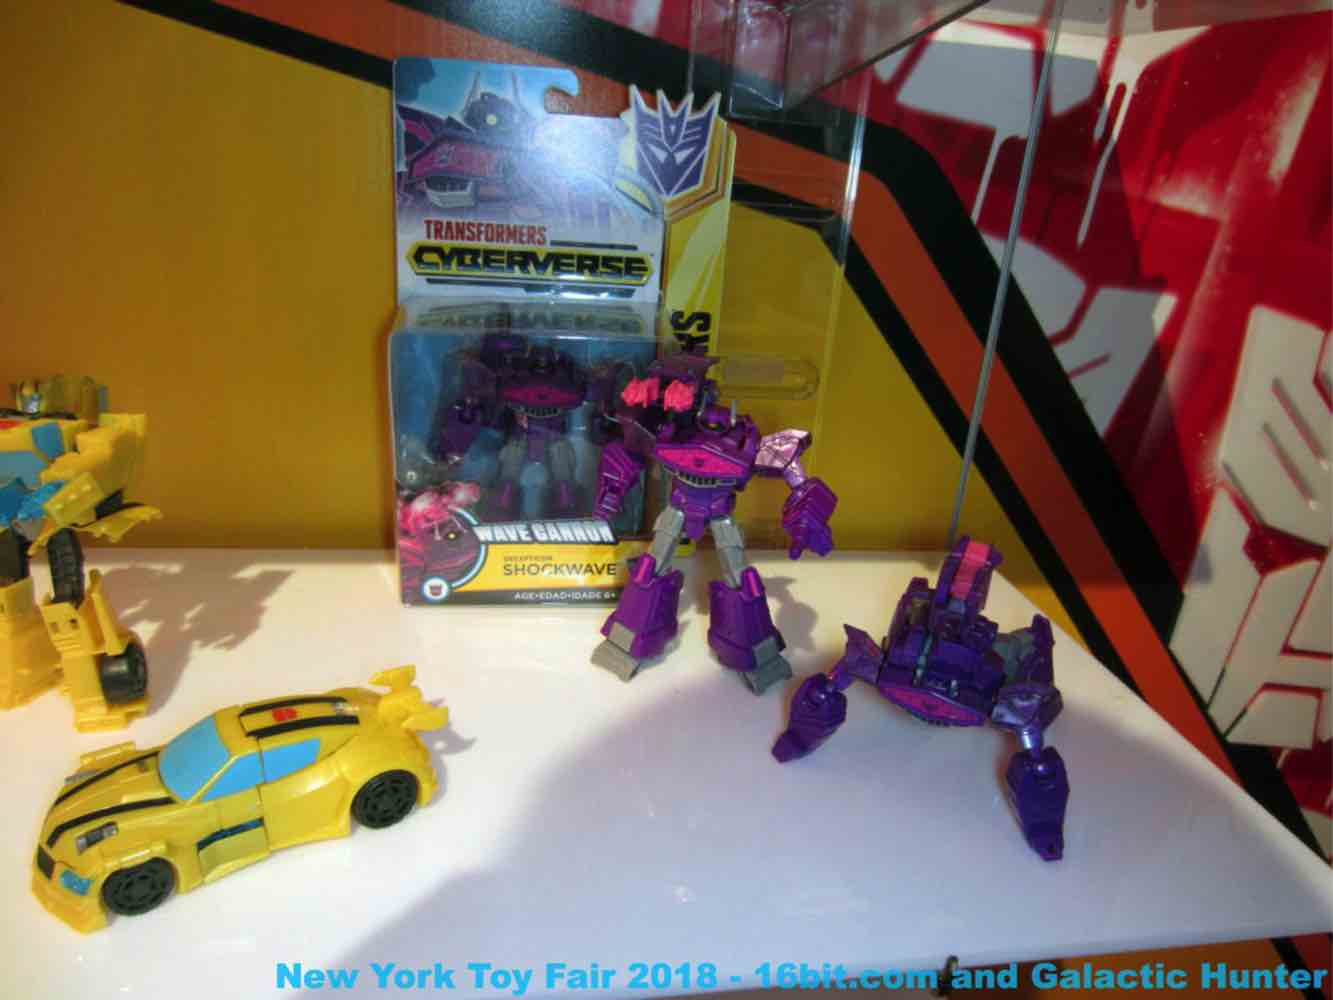 2018 New Toys : Bit toy fair coverage of hasbro transformers